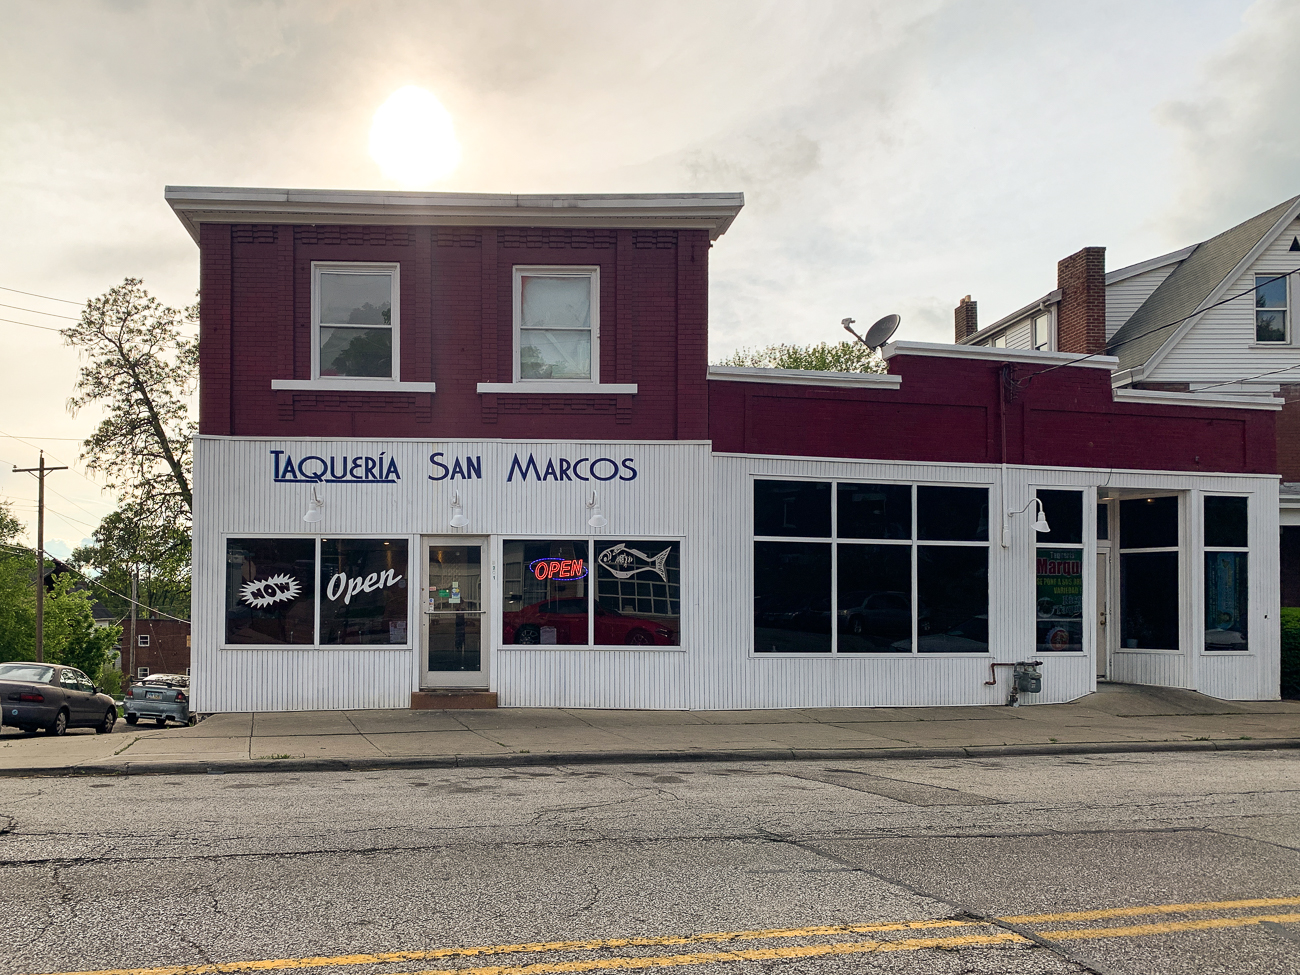 <p>PLACE: Taqueria San Marcos / ADDRESS: 5201 Carthage Avenue (Norwood) / DESCRIPTION: When I walk into Taqueria San Marcos, I feel like I'm stepping back into a simpler time. I love the old diner décor and, of course, a fridge full of Jarritos. I had the al pastor, tripa, and chorizo tacos. All three were delicious and unique in their own right. They have plenty of meat options, from the conventional (chicken or beef) to the meat you can't get at those more well-known places (like beef tongue and beef gut). / Image: Shawn Braley // Published: 5.28.19</p>